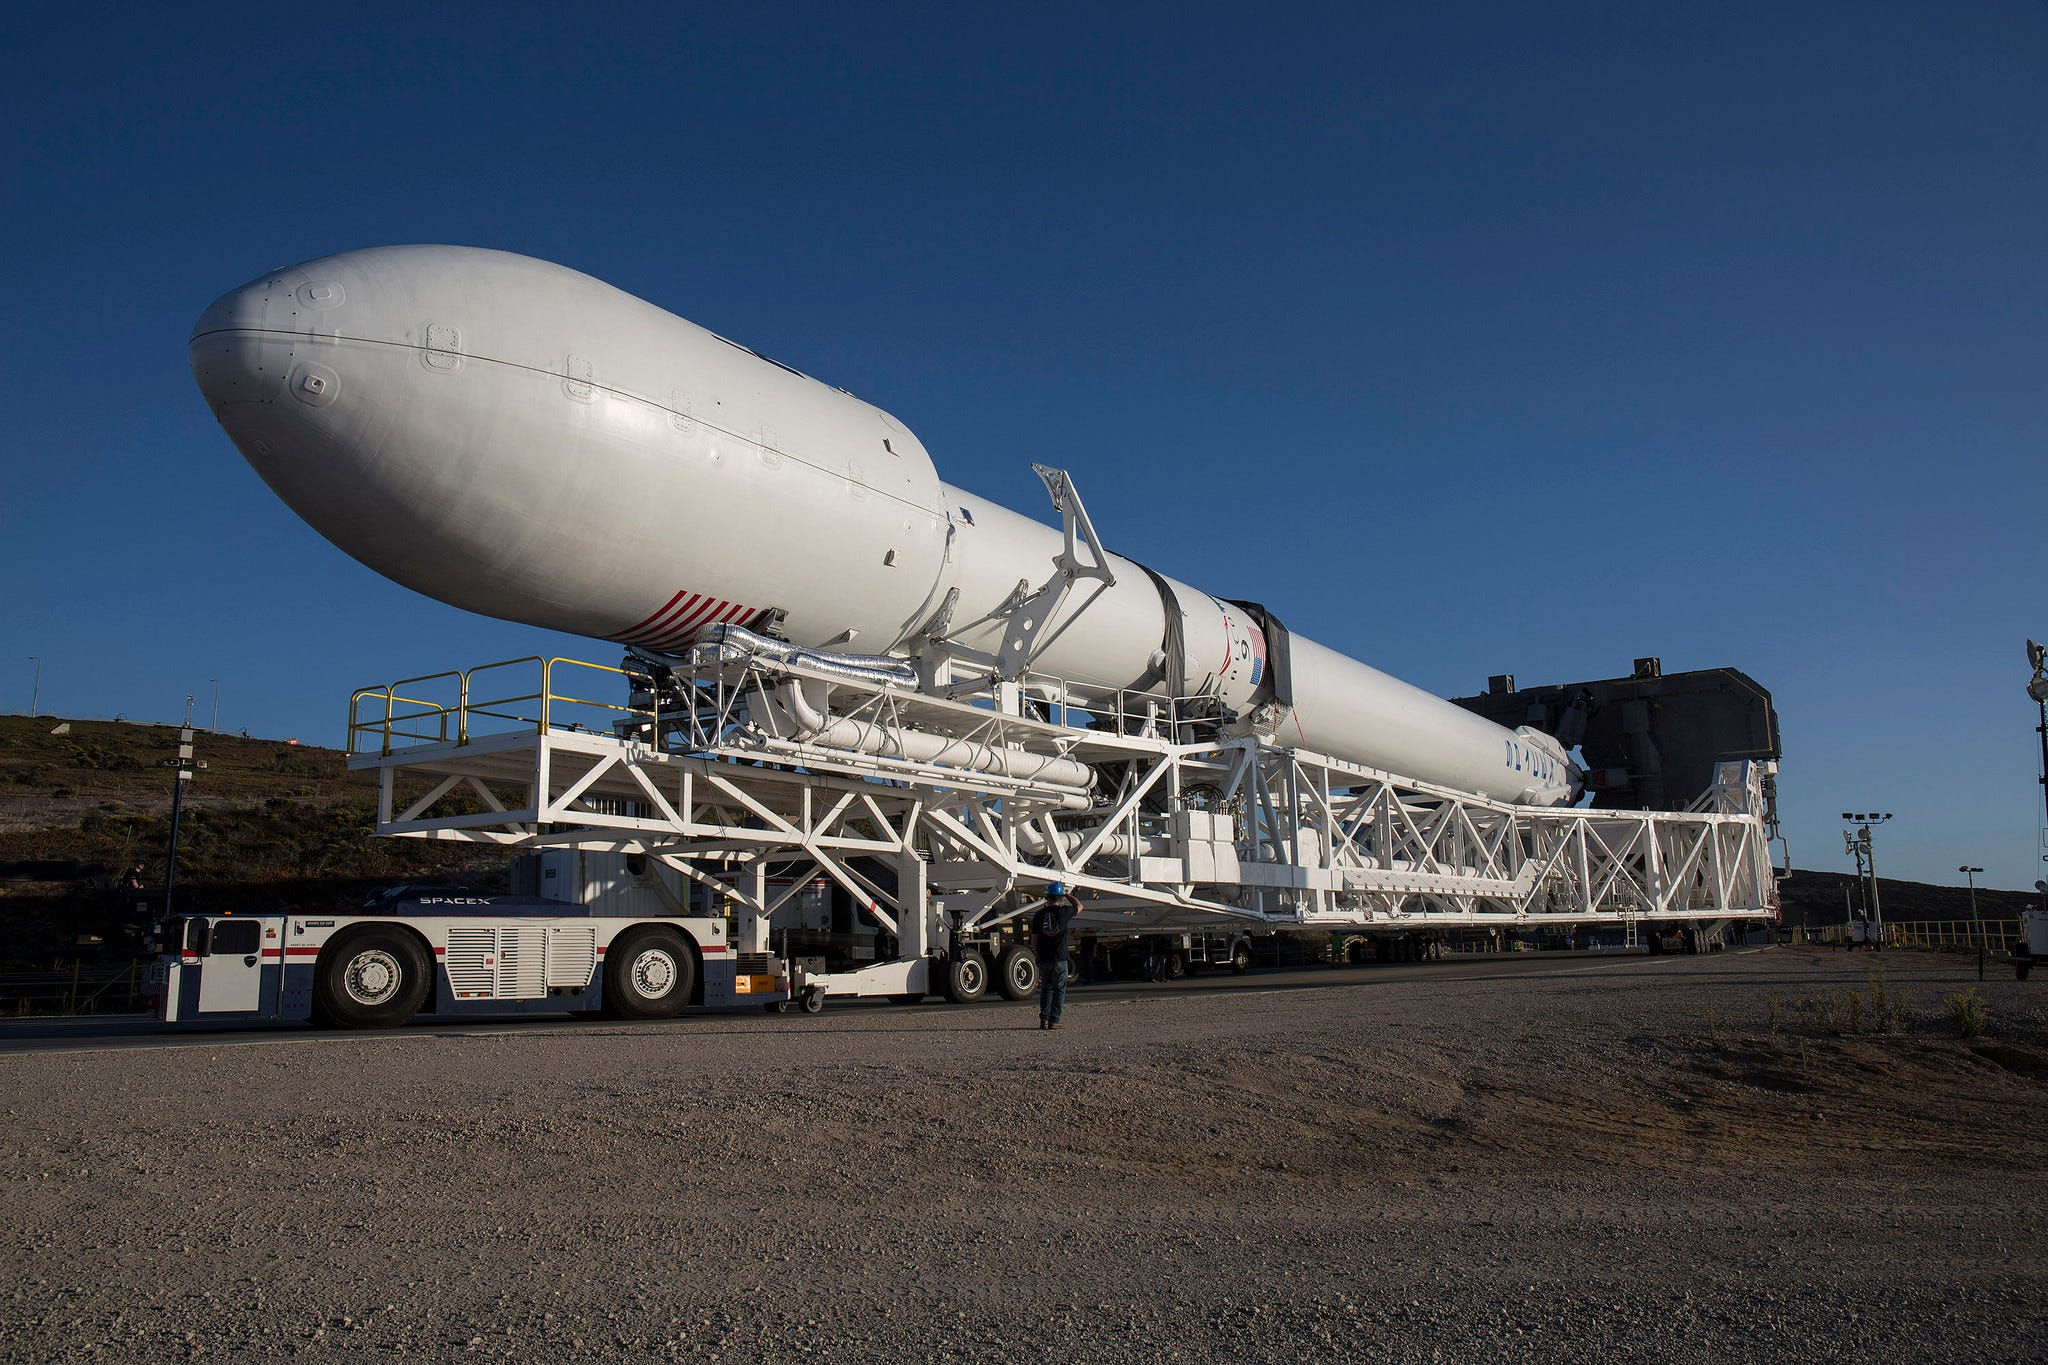 SpaceX studying Falcon rocket nose cones before proceeding with KSC launch